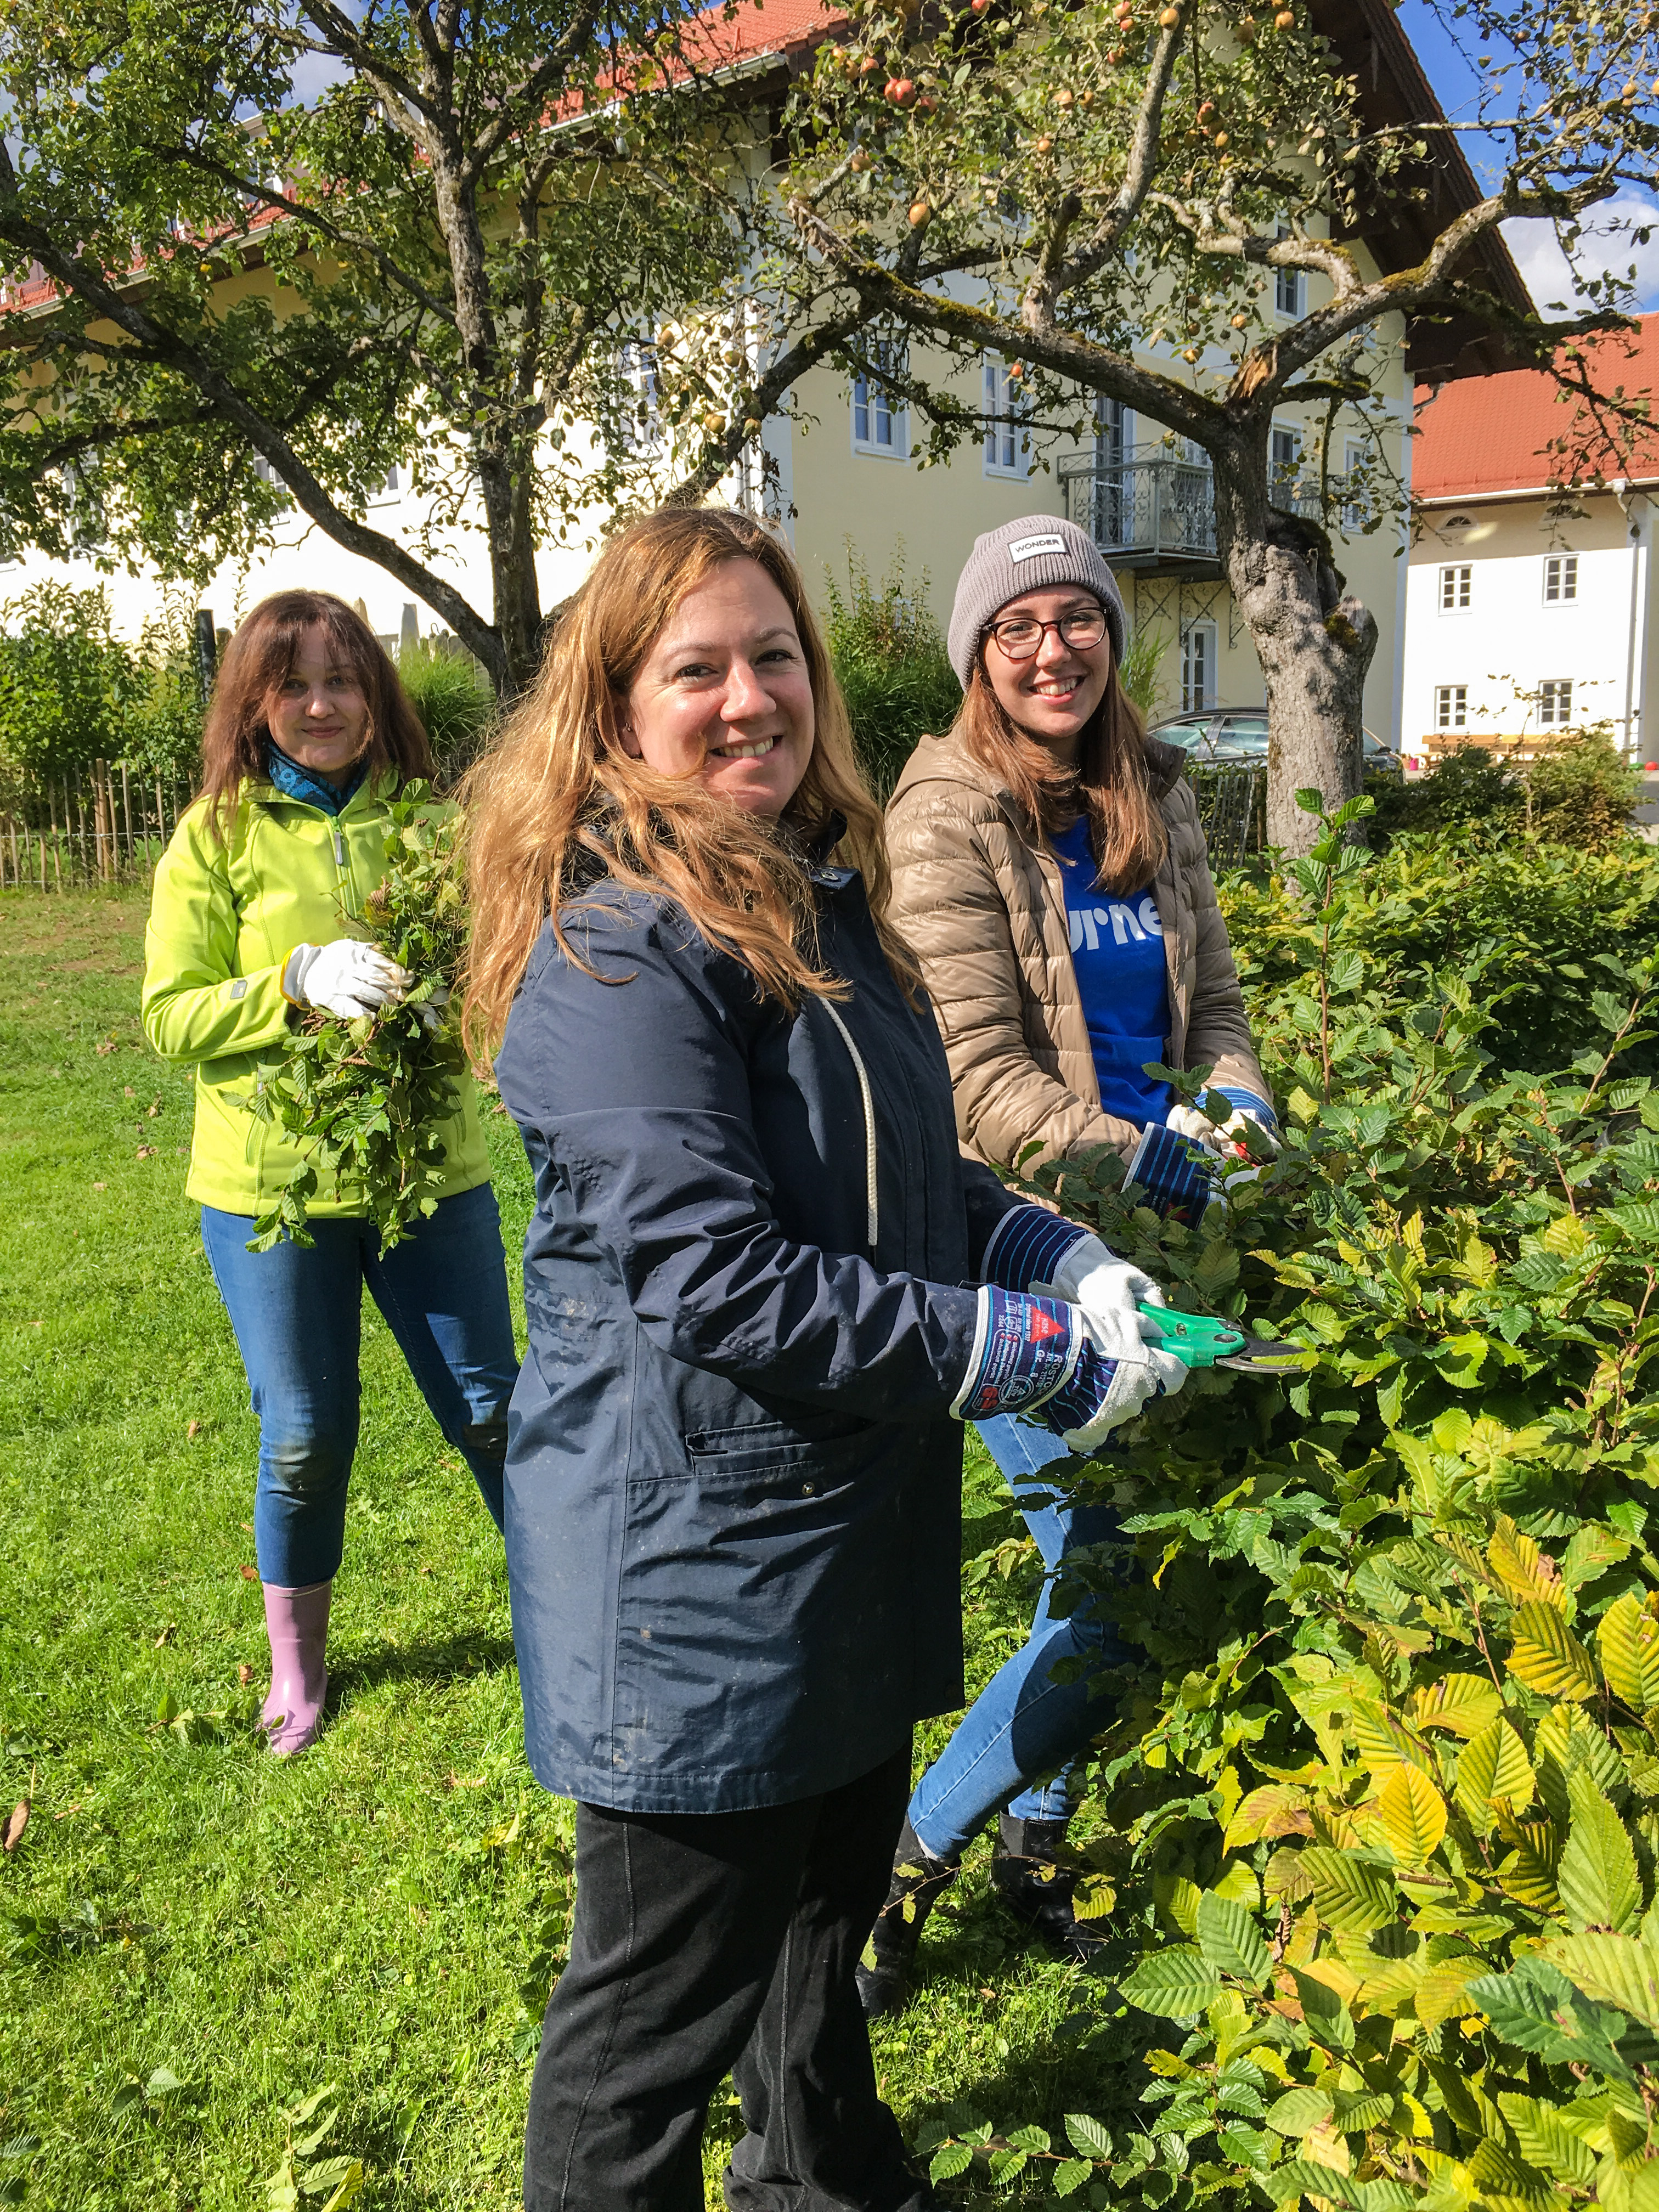 Turner Volunteer Day in Munich